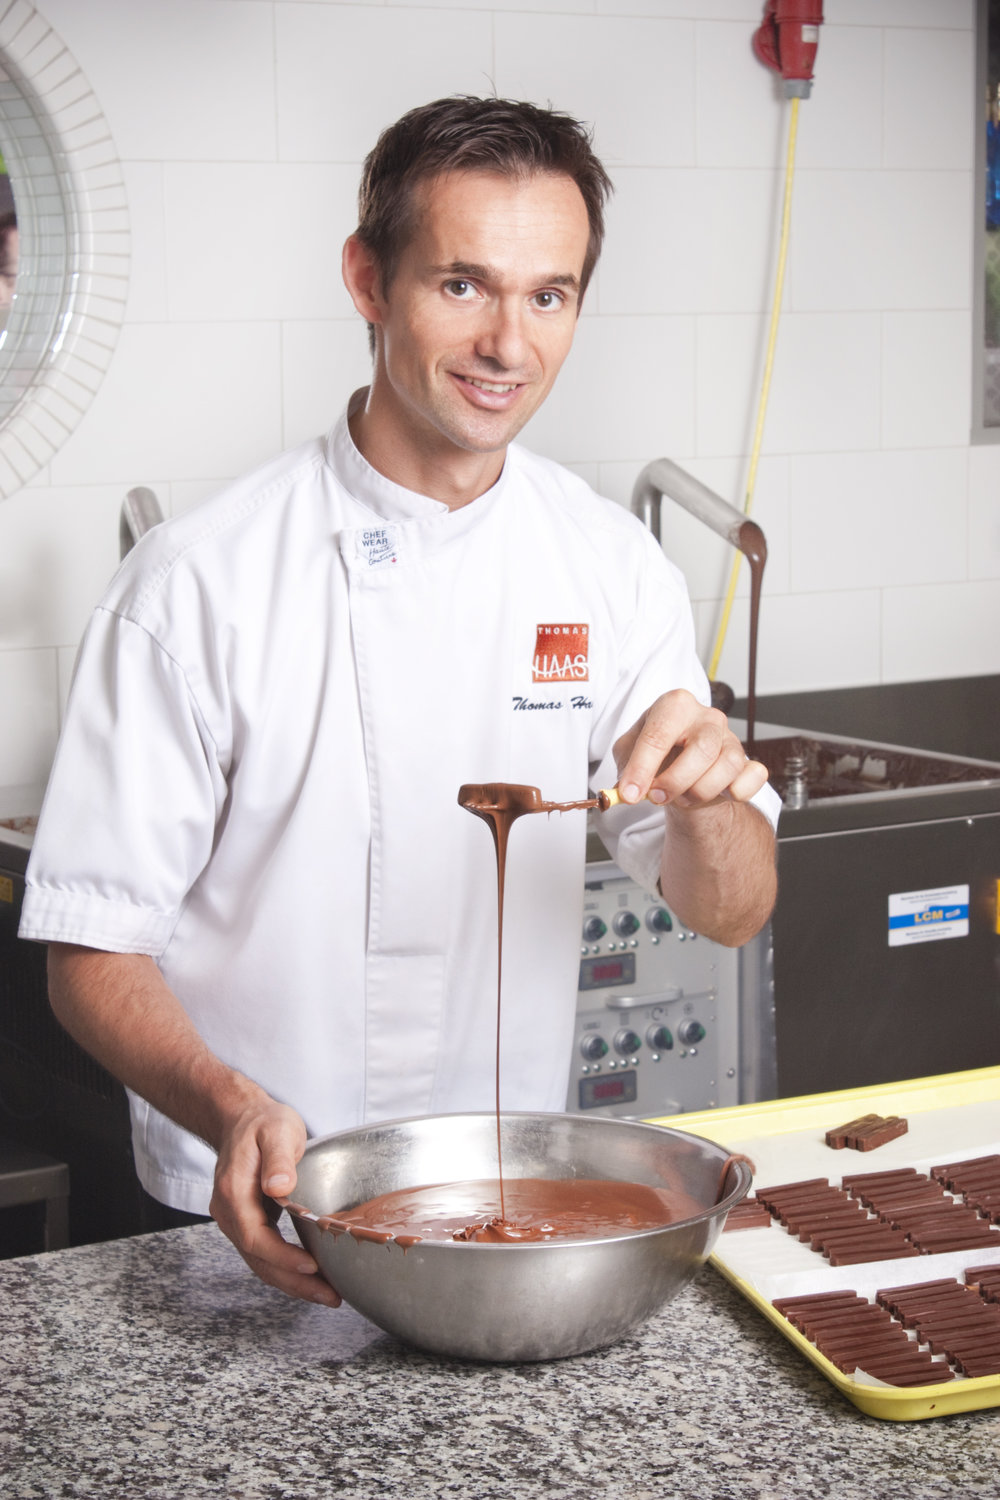 CHOCOLATIER THOMAS HAAS KEEPS WINNING STREAK ALIVE AT ANNUAL VANCOUVER MAGAZINE RESTAURANT AWARDS - APRIL 17, 2018The fourth-generation talent behind the internationally renowned Thomas Haas Chocolates & Pâtisserie was singled out for the newly christened 'Best Patisserie' title yesterday at the 29th annual Vancouver Magazine Restaurant Awards.This year marks the 15th time in the last 17 years in which Haas has been honoured for an accolade at the ceremony. After winning eight straight titles for Best Last Course beginning in 2001, Haas went on to score four consecutive Pastry Chef of the Year awards and five since the category was launched in 2011, in addition to Best Bakery at last year's edition of the awards.